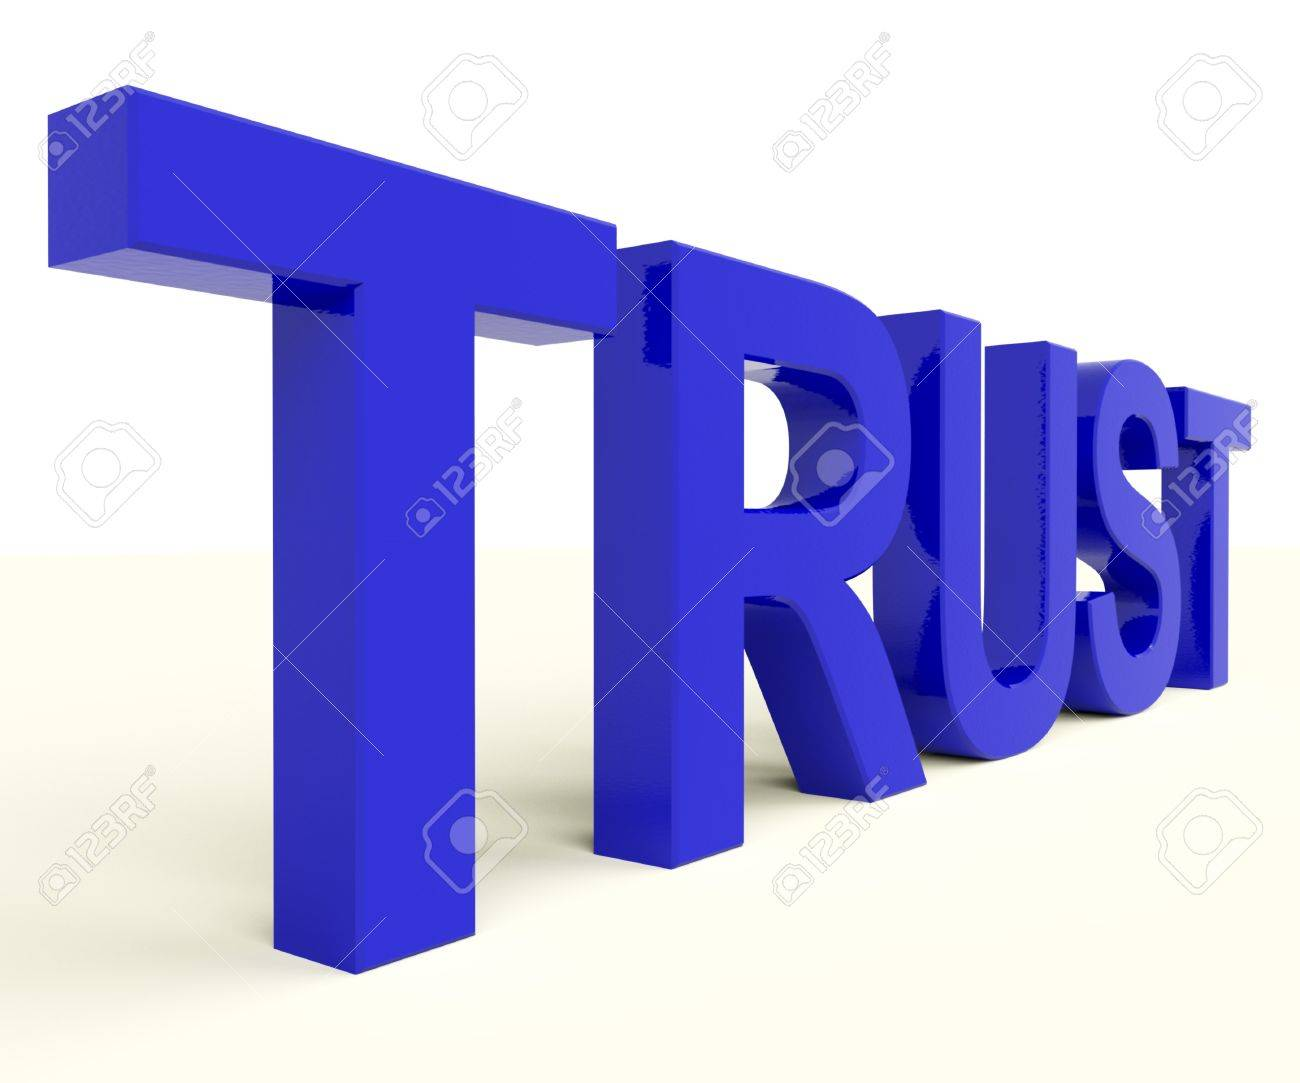 Word trust as symbol for faith and belief stock photo picture and word trust as symbol for faith and belief stock photo 12637110 biocorpaavc Choice Image